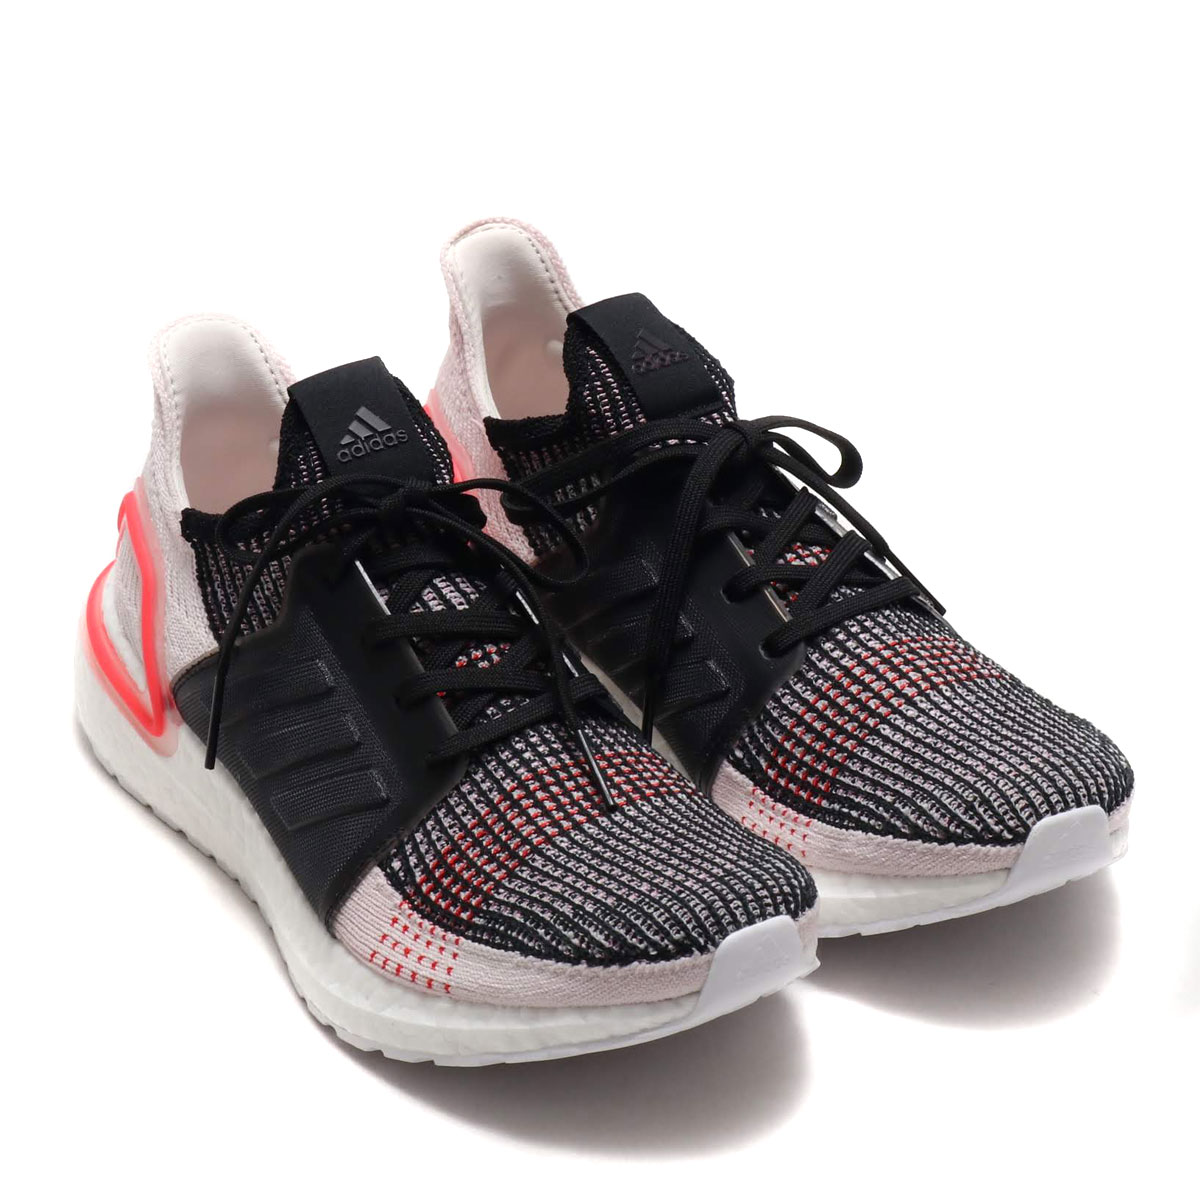 c252daa682b72 adidas UltraBOOST 19 (CORE BLACK ORCHID TINT ACTIVE RED) (Adidas ultra  boost 19)